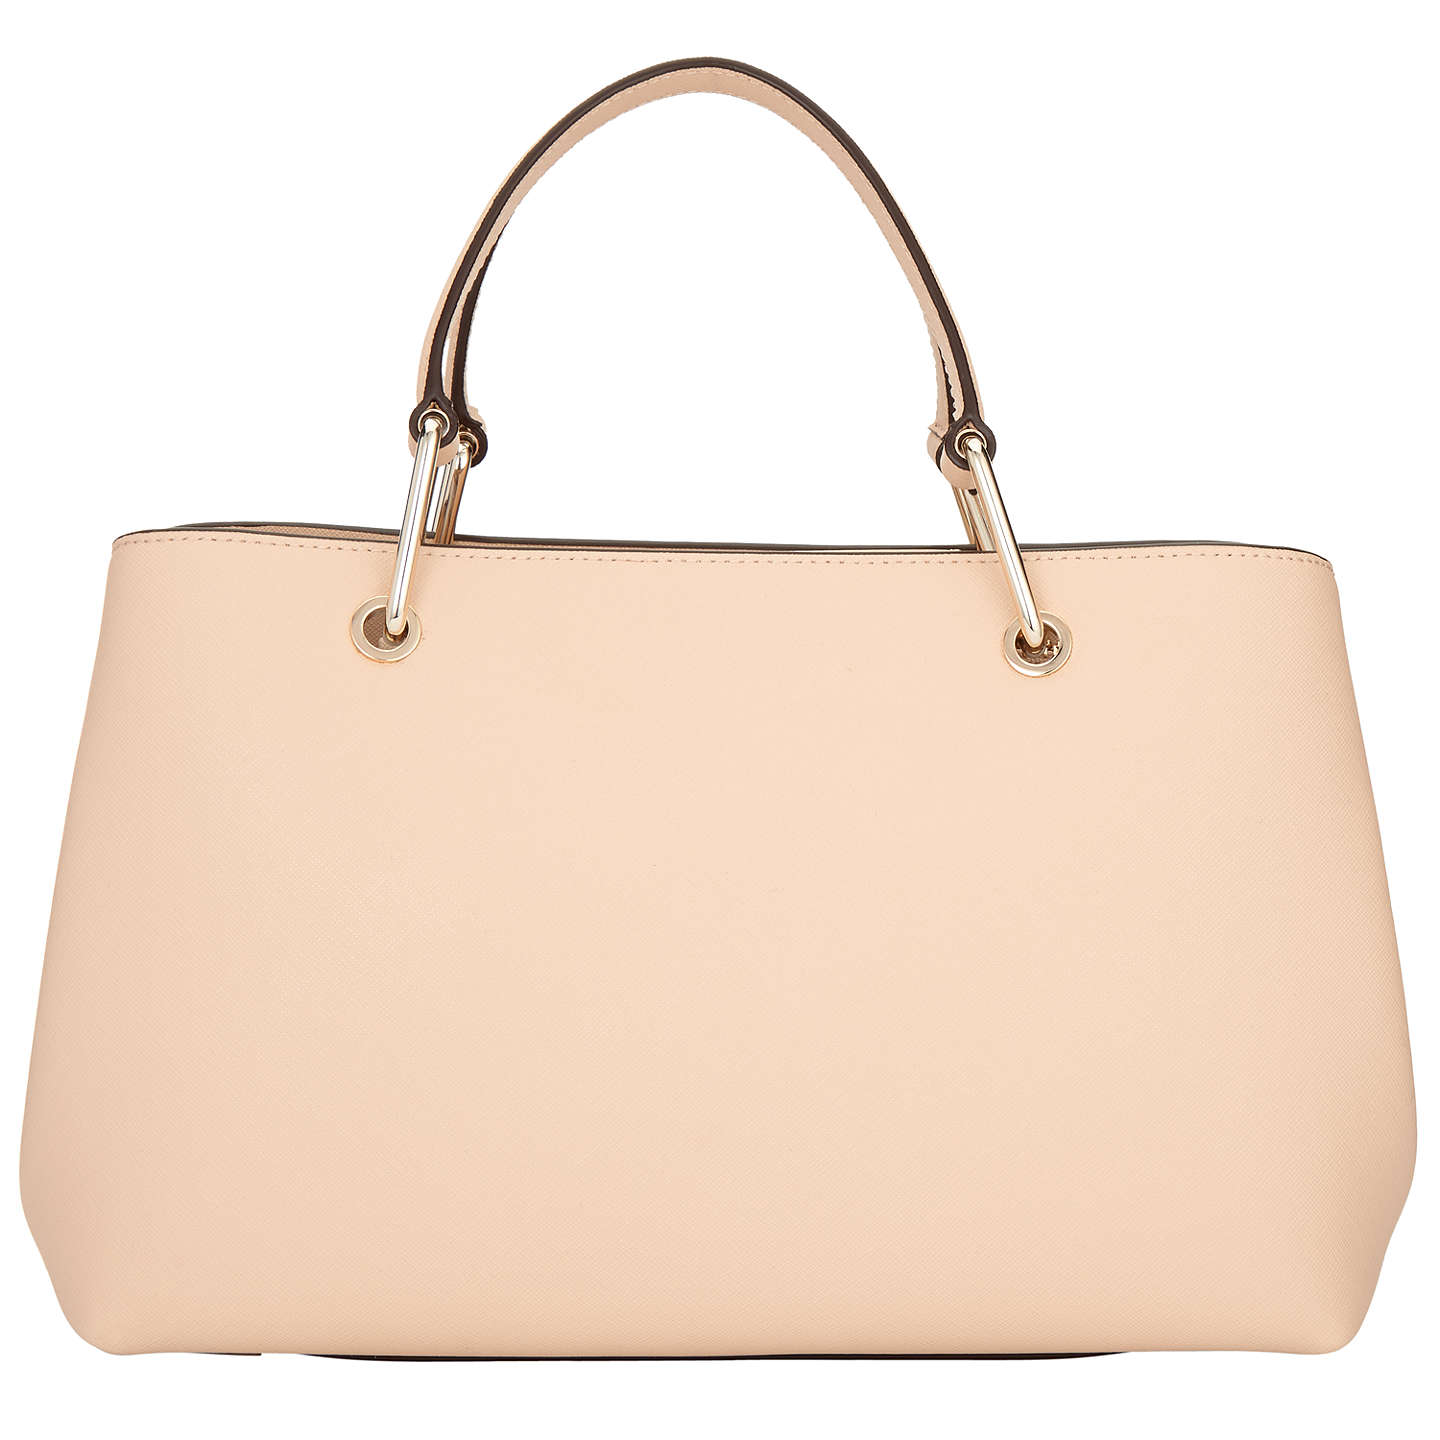 BuyDKNY Bryant Park Saffiano Leather Satchel, Nude Online at johnlewis.com